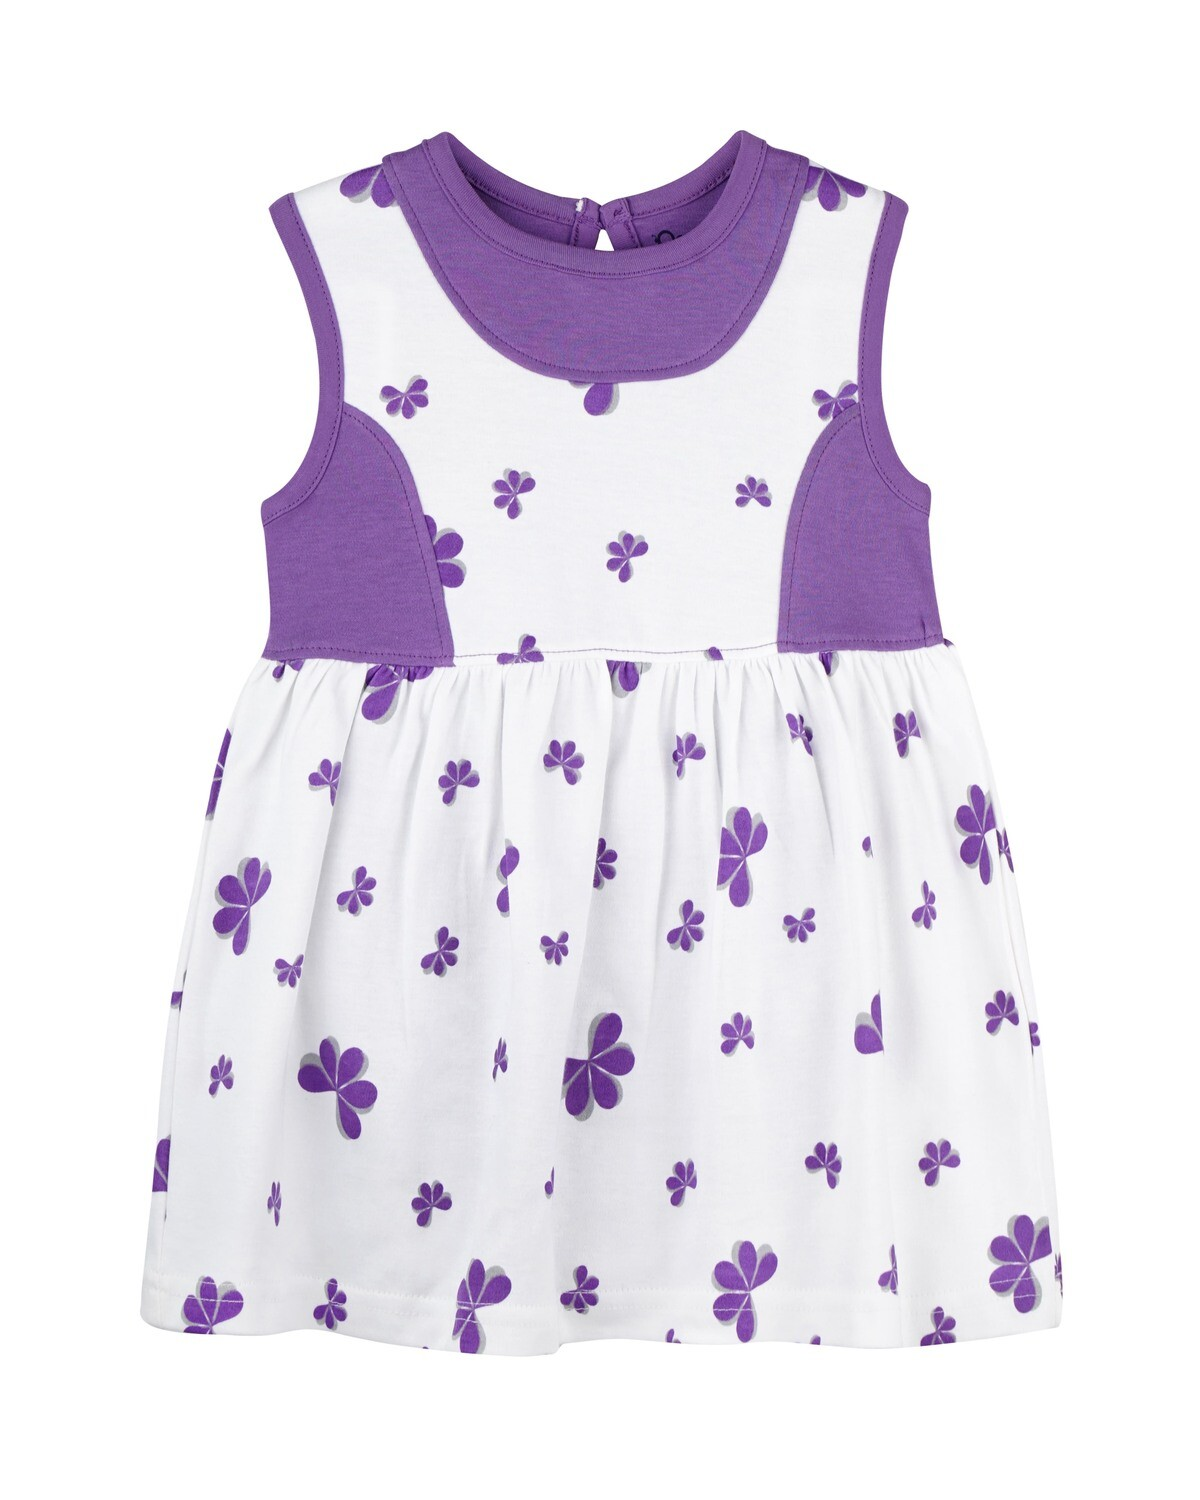 ESTELLE Lavender Sleeveless Frock and Panties for Baby Girls